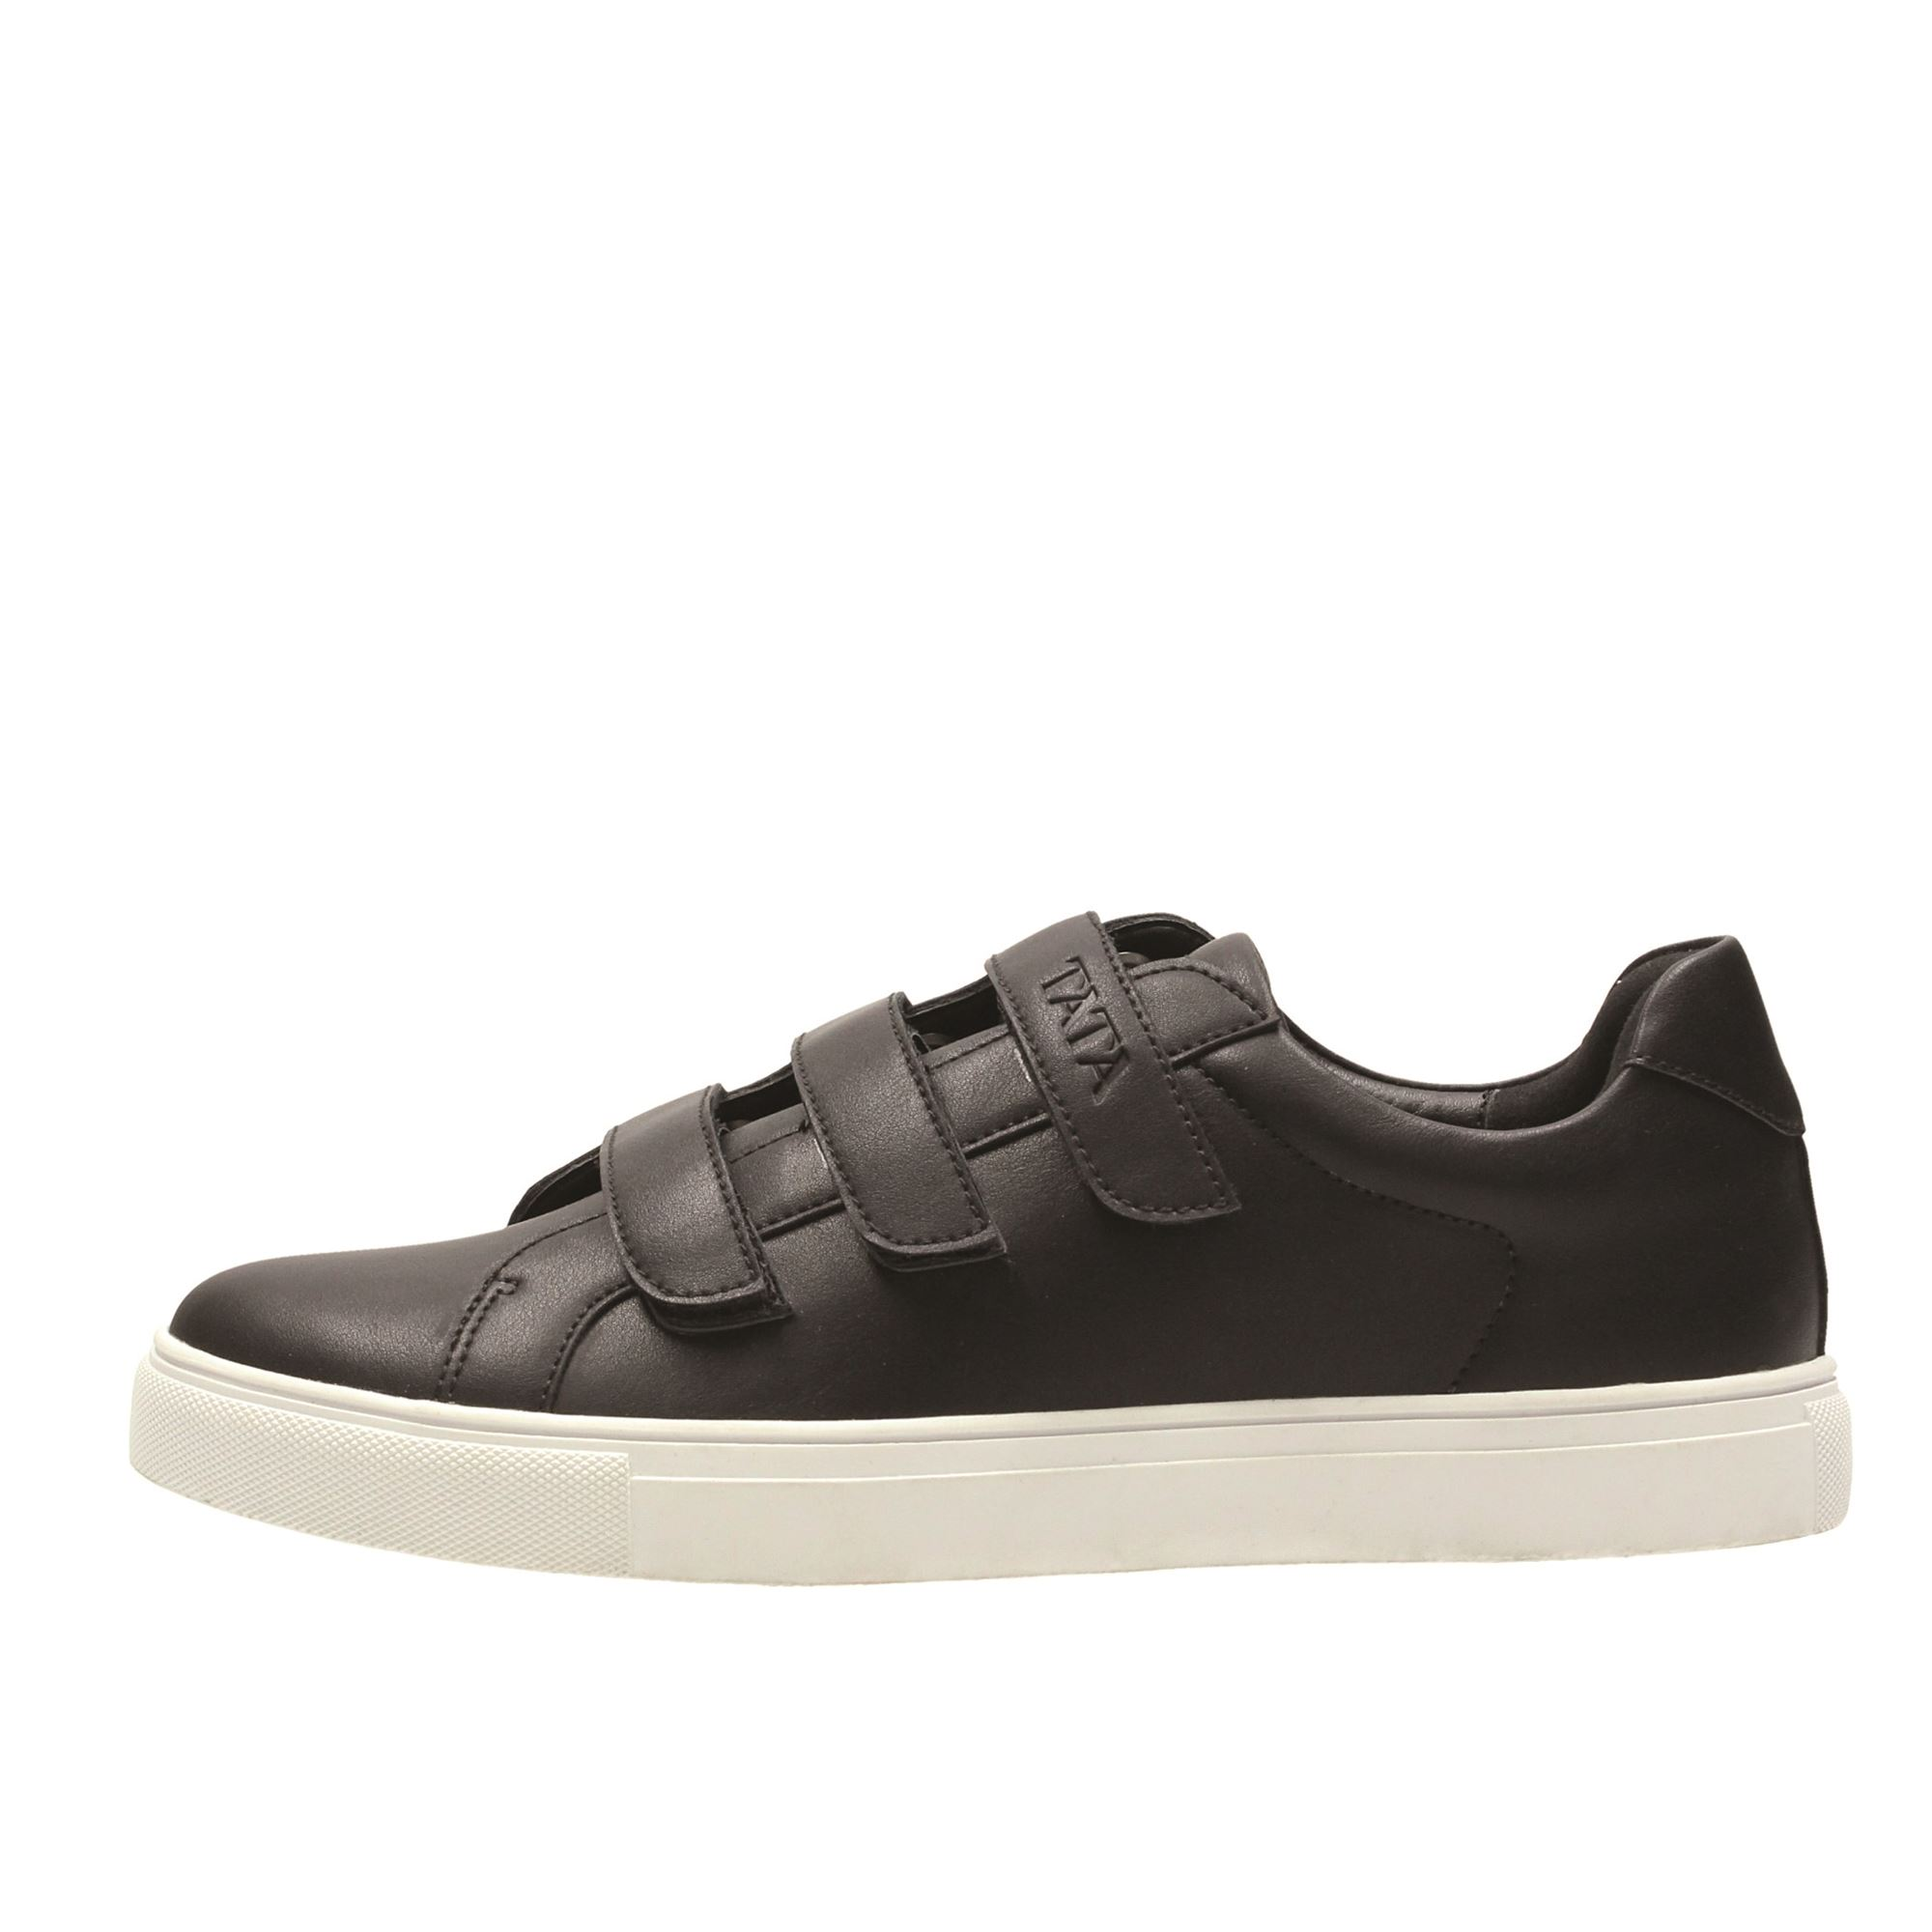 Tata Italia Shoes Man Sneakers Black STP18-TT028A